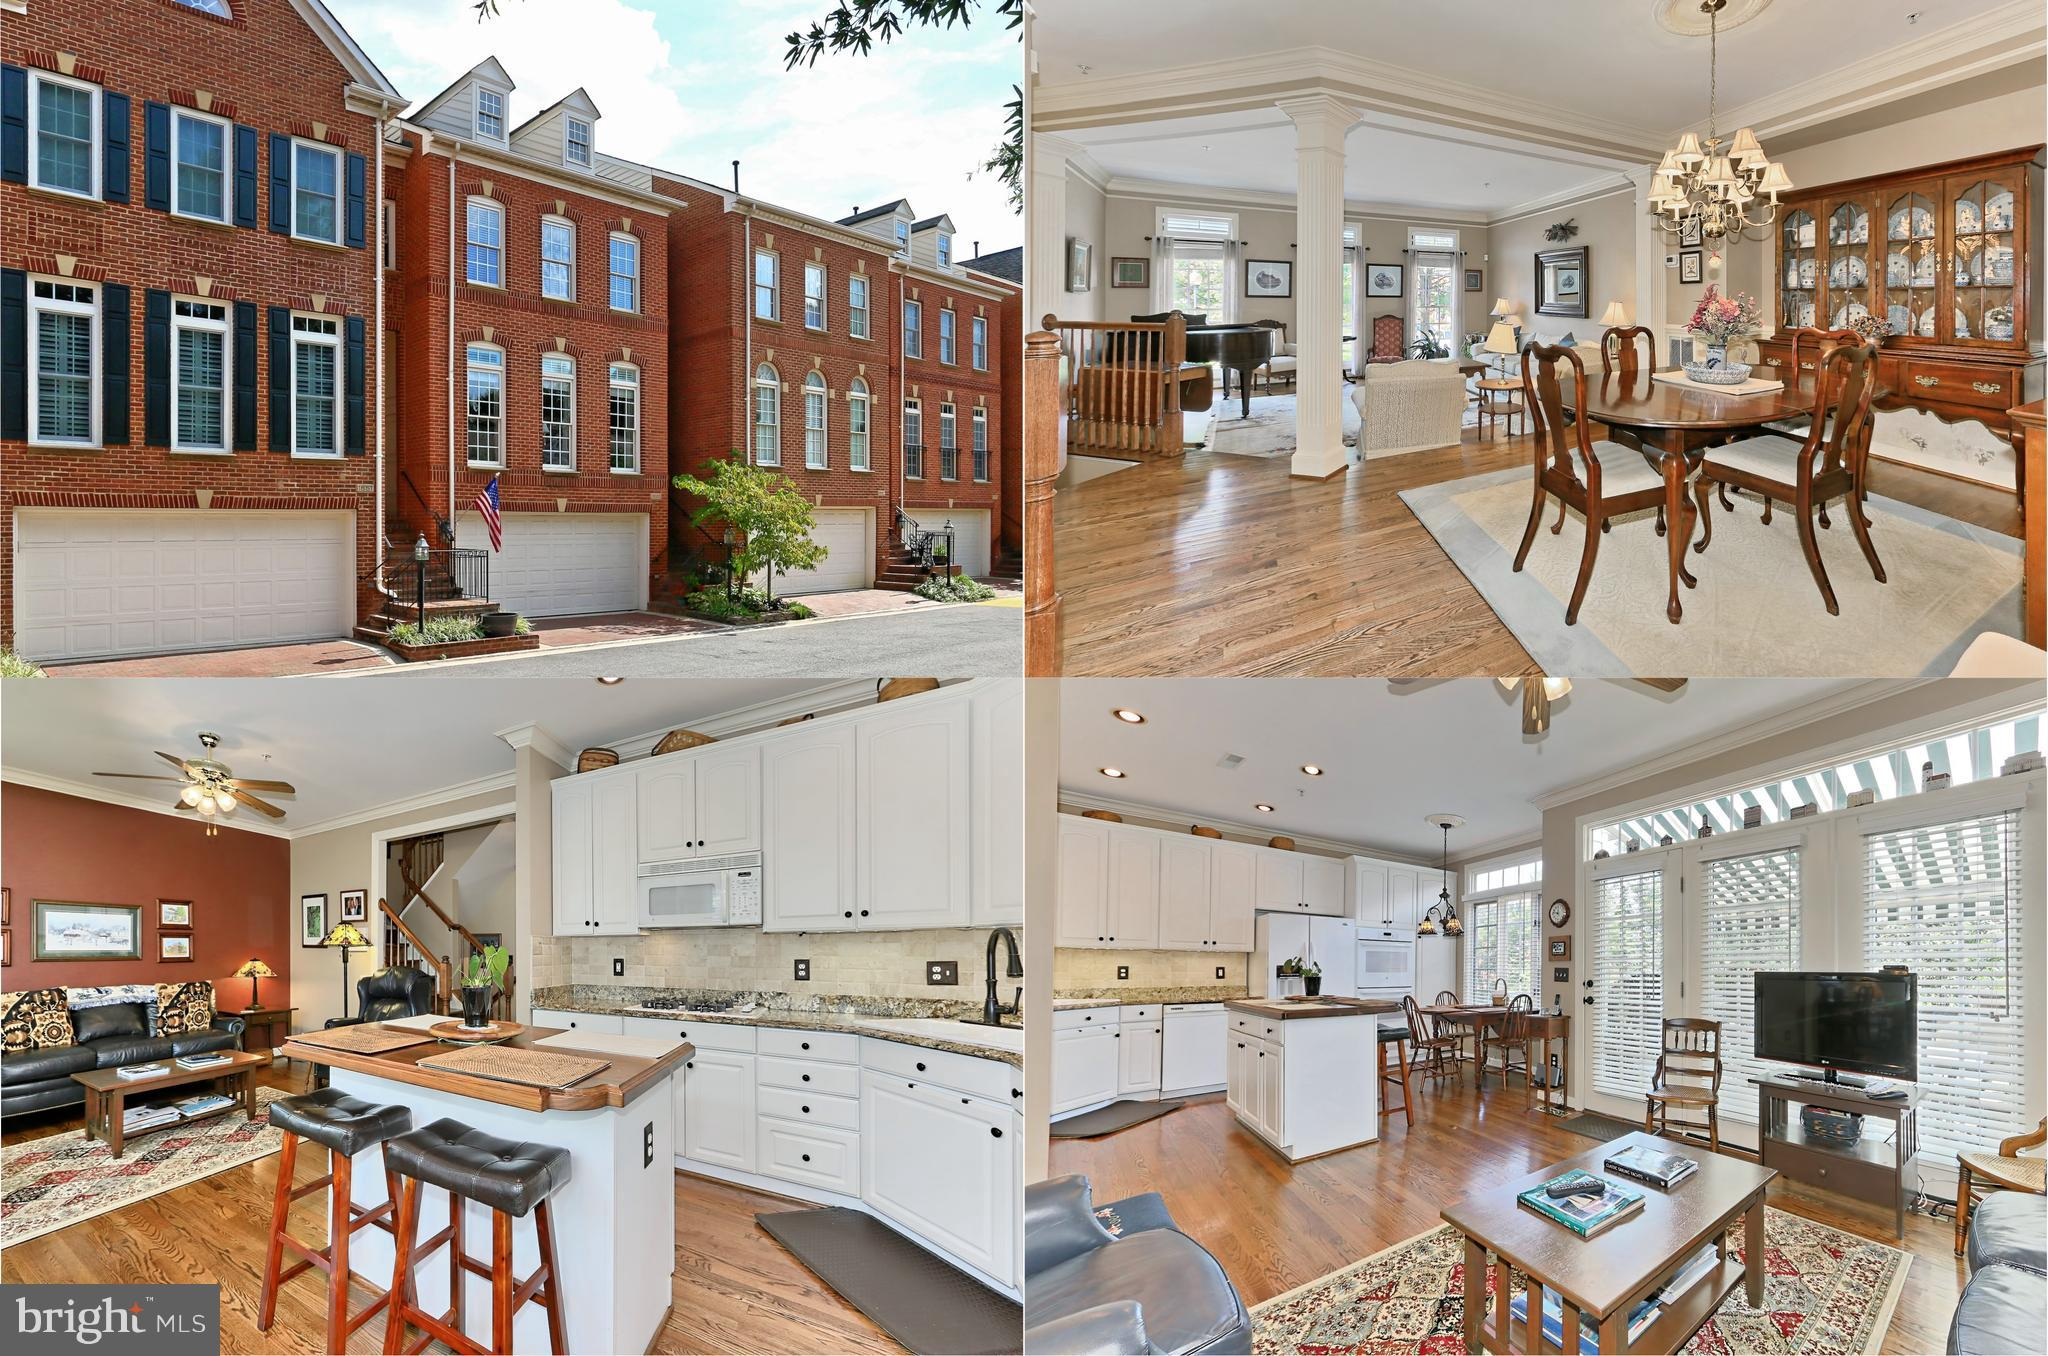 Gorgeous 4 level, 4 BR, 3.5 BA TH w/2 car garage in fabulous location! Solid wood front door, 9' ceilings, refinished hardwds, custom moldings, upgraded hardware! LR & DR, gourmet kitchen w/granite, custom walnut island opens to fam rm & deck w/retractable awning! MBR w/hdwd, luxury BA, large private upper level BR! LL rec rm w/FP leads to patio, landscaped fenced yard. New HVAC, HWH, W&D & more!